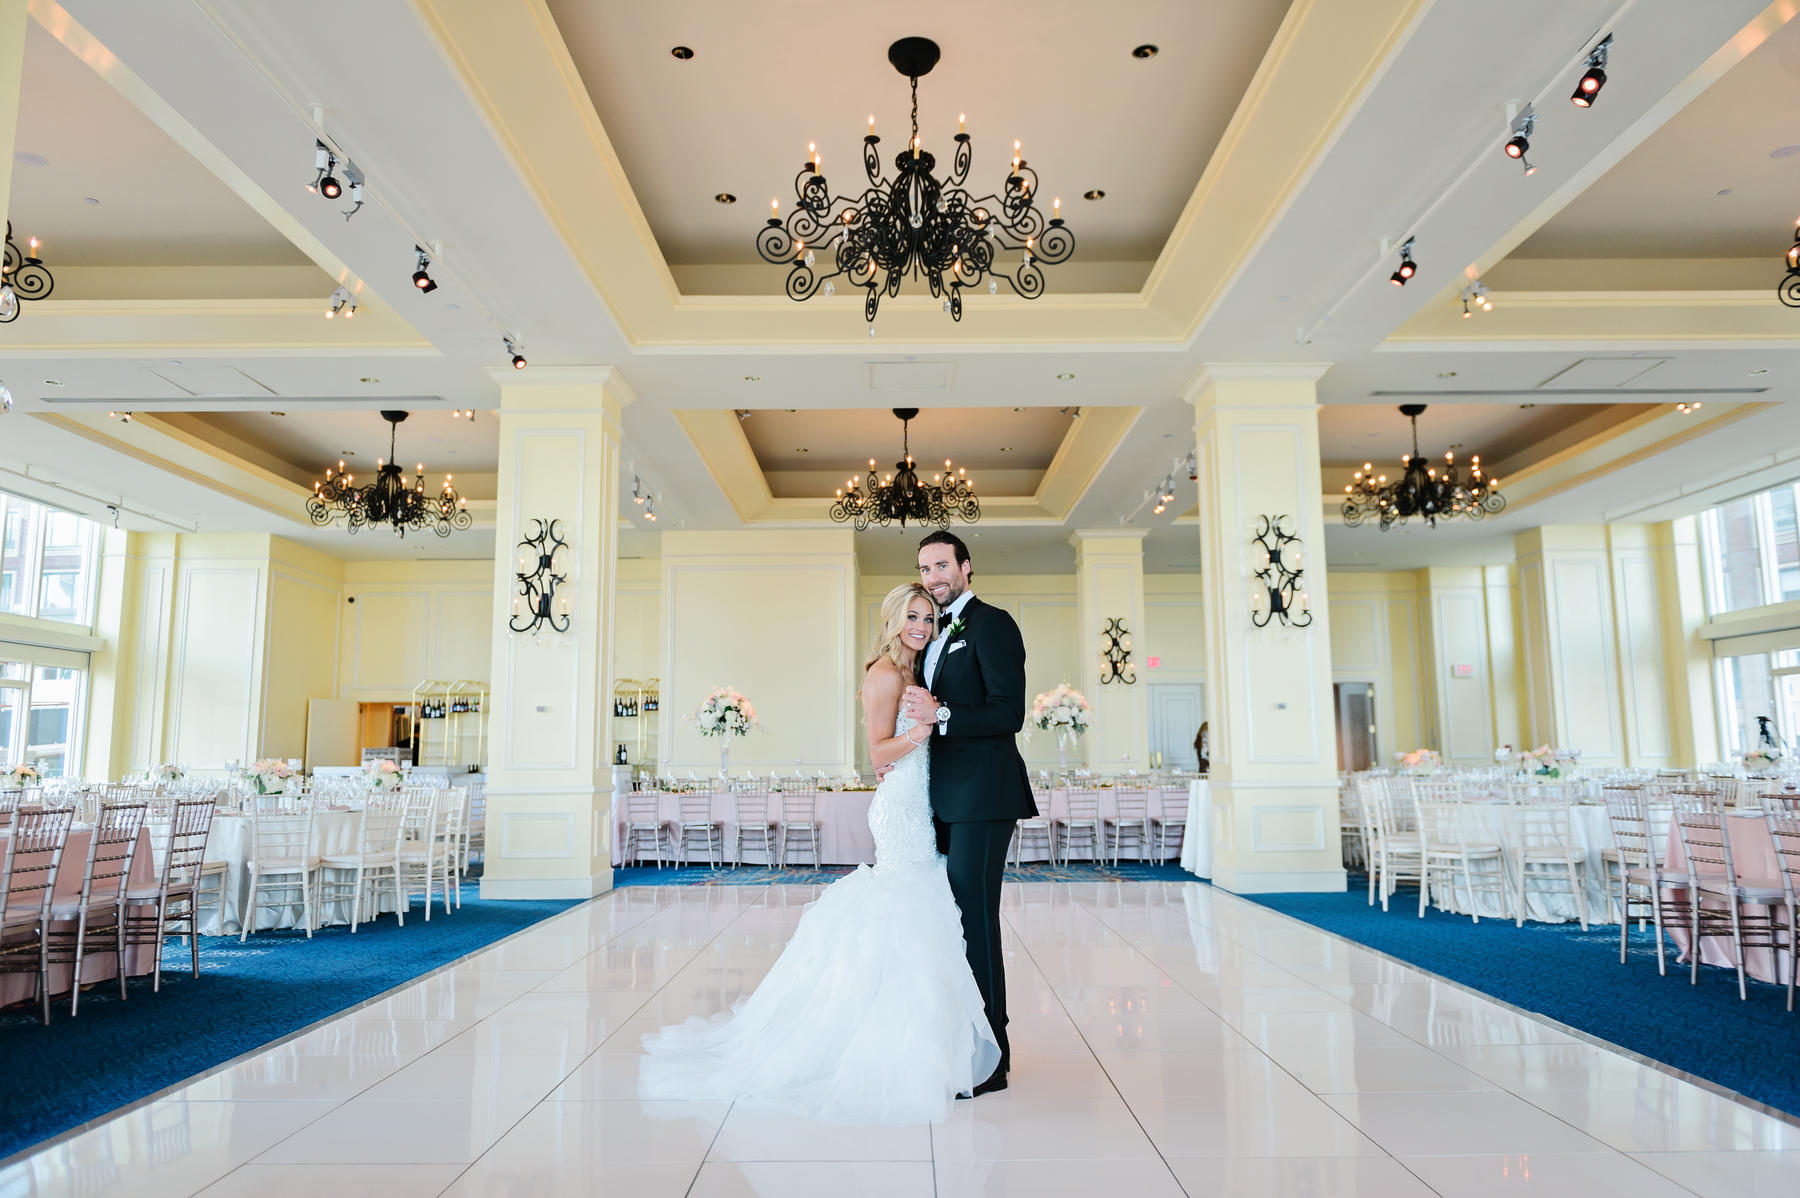 Newlyweds in the middle of a grand ballroom